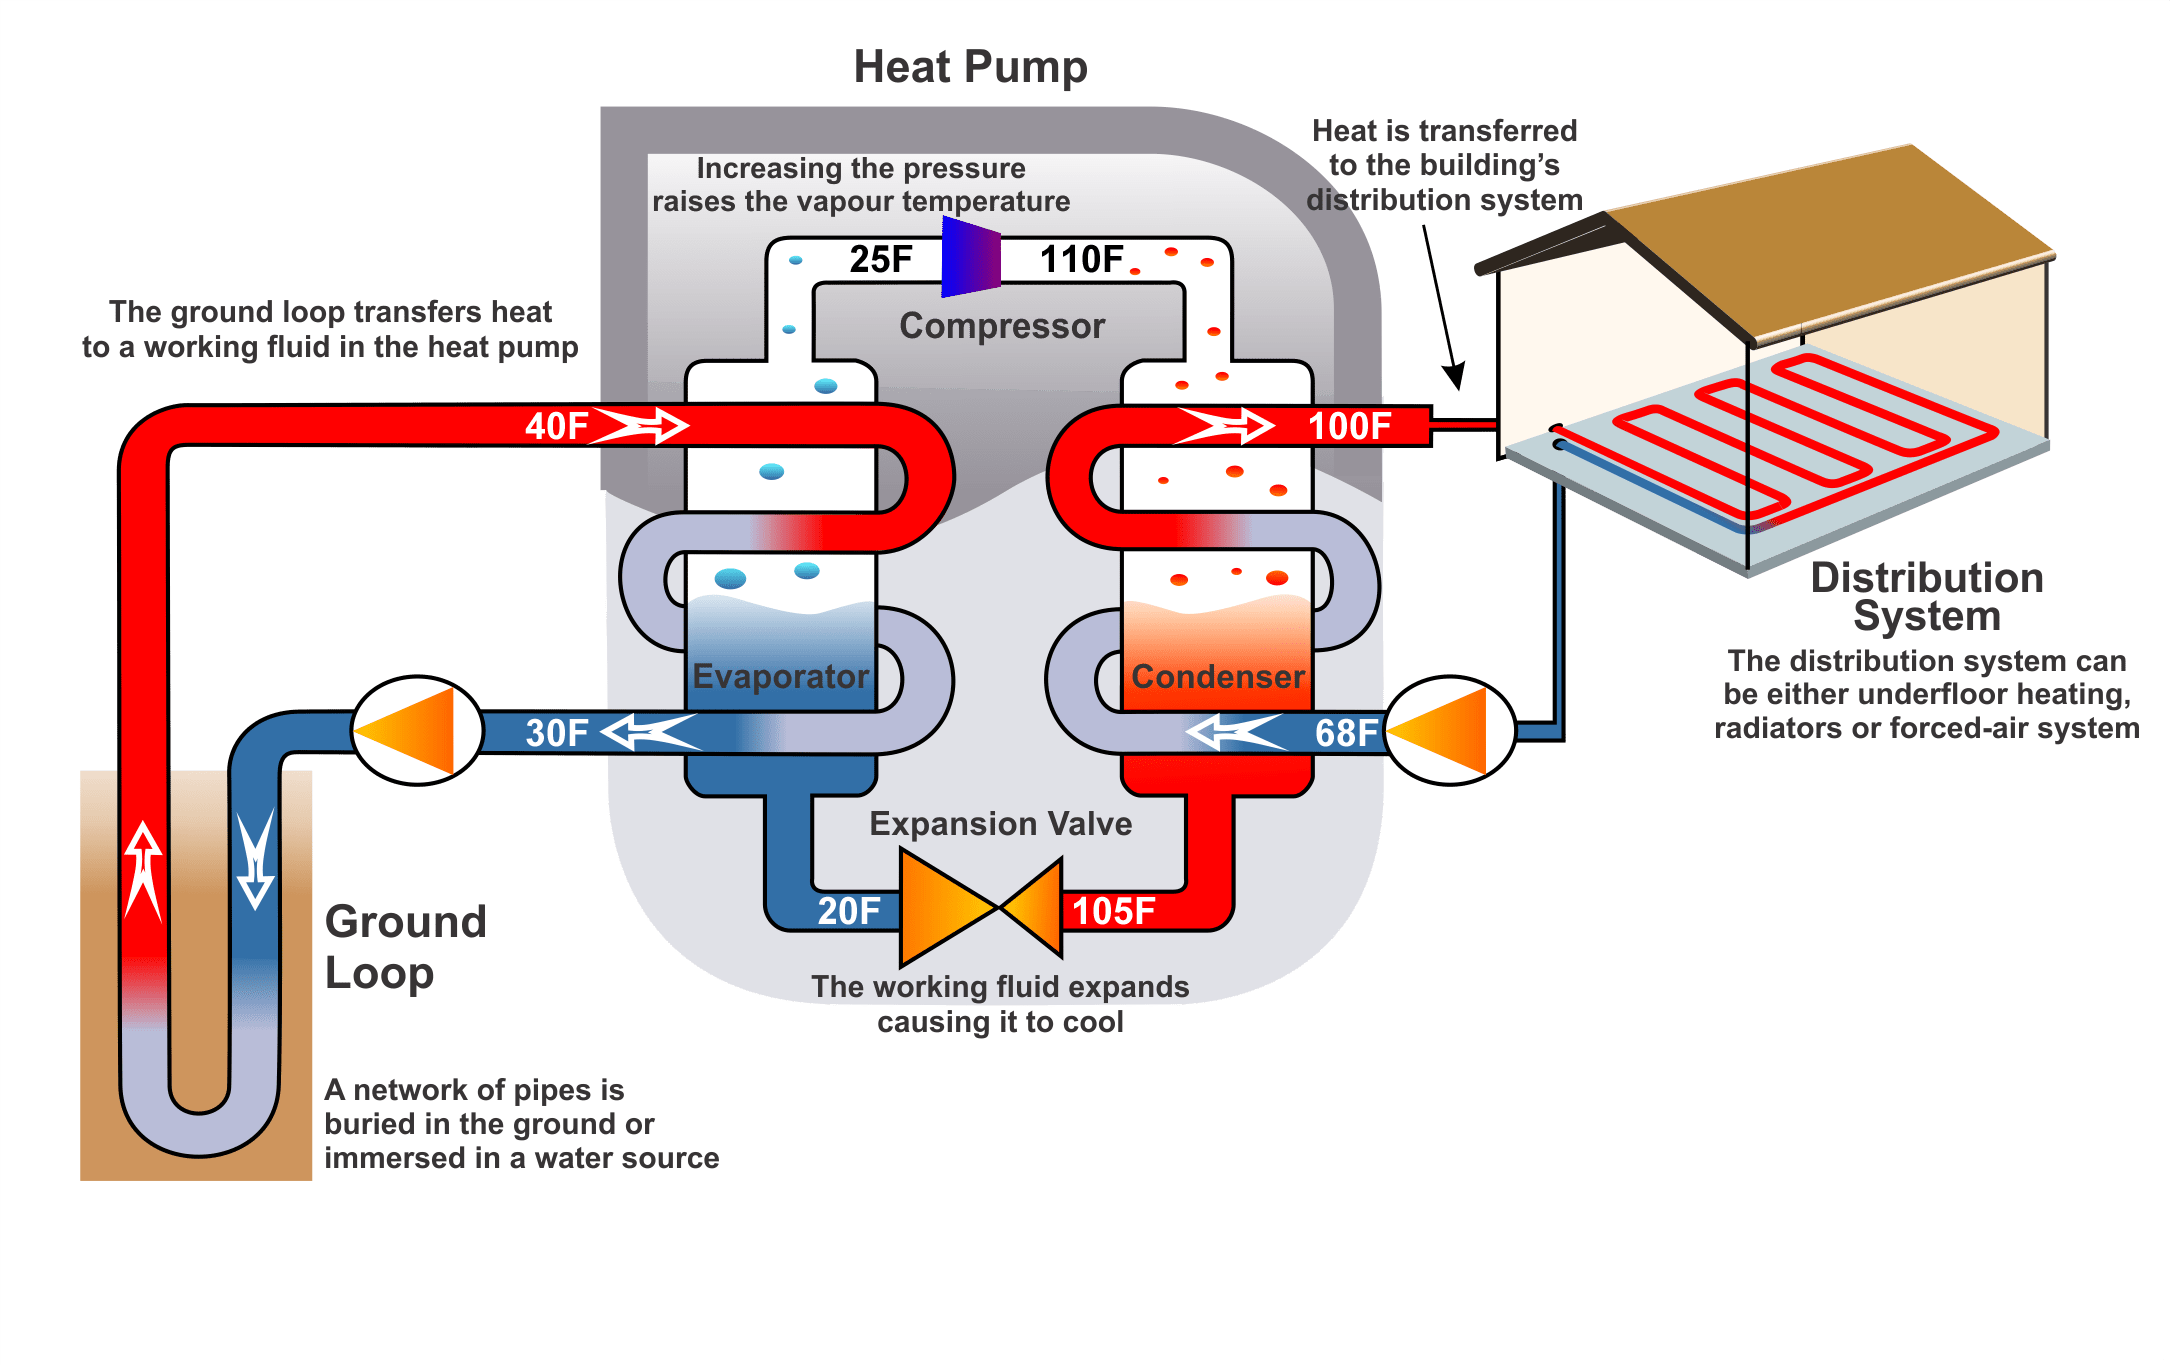 geothermal piping diagram wiring diagrams solar panel wiring diagram geothermal piping diagram wiring library water to [ 2170 x 1365 Pixel ]